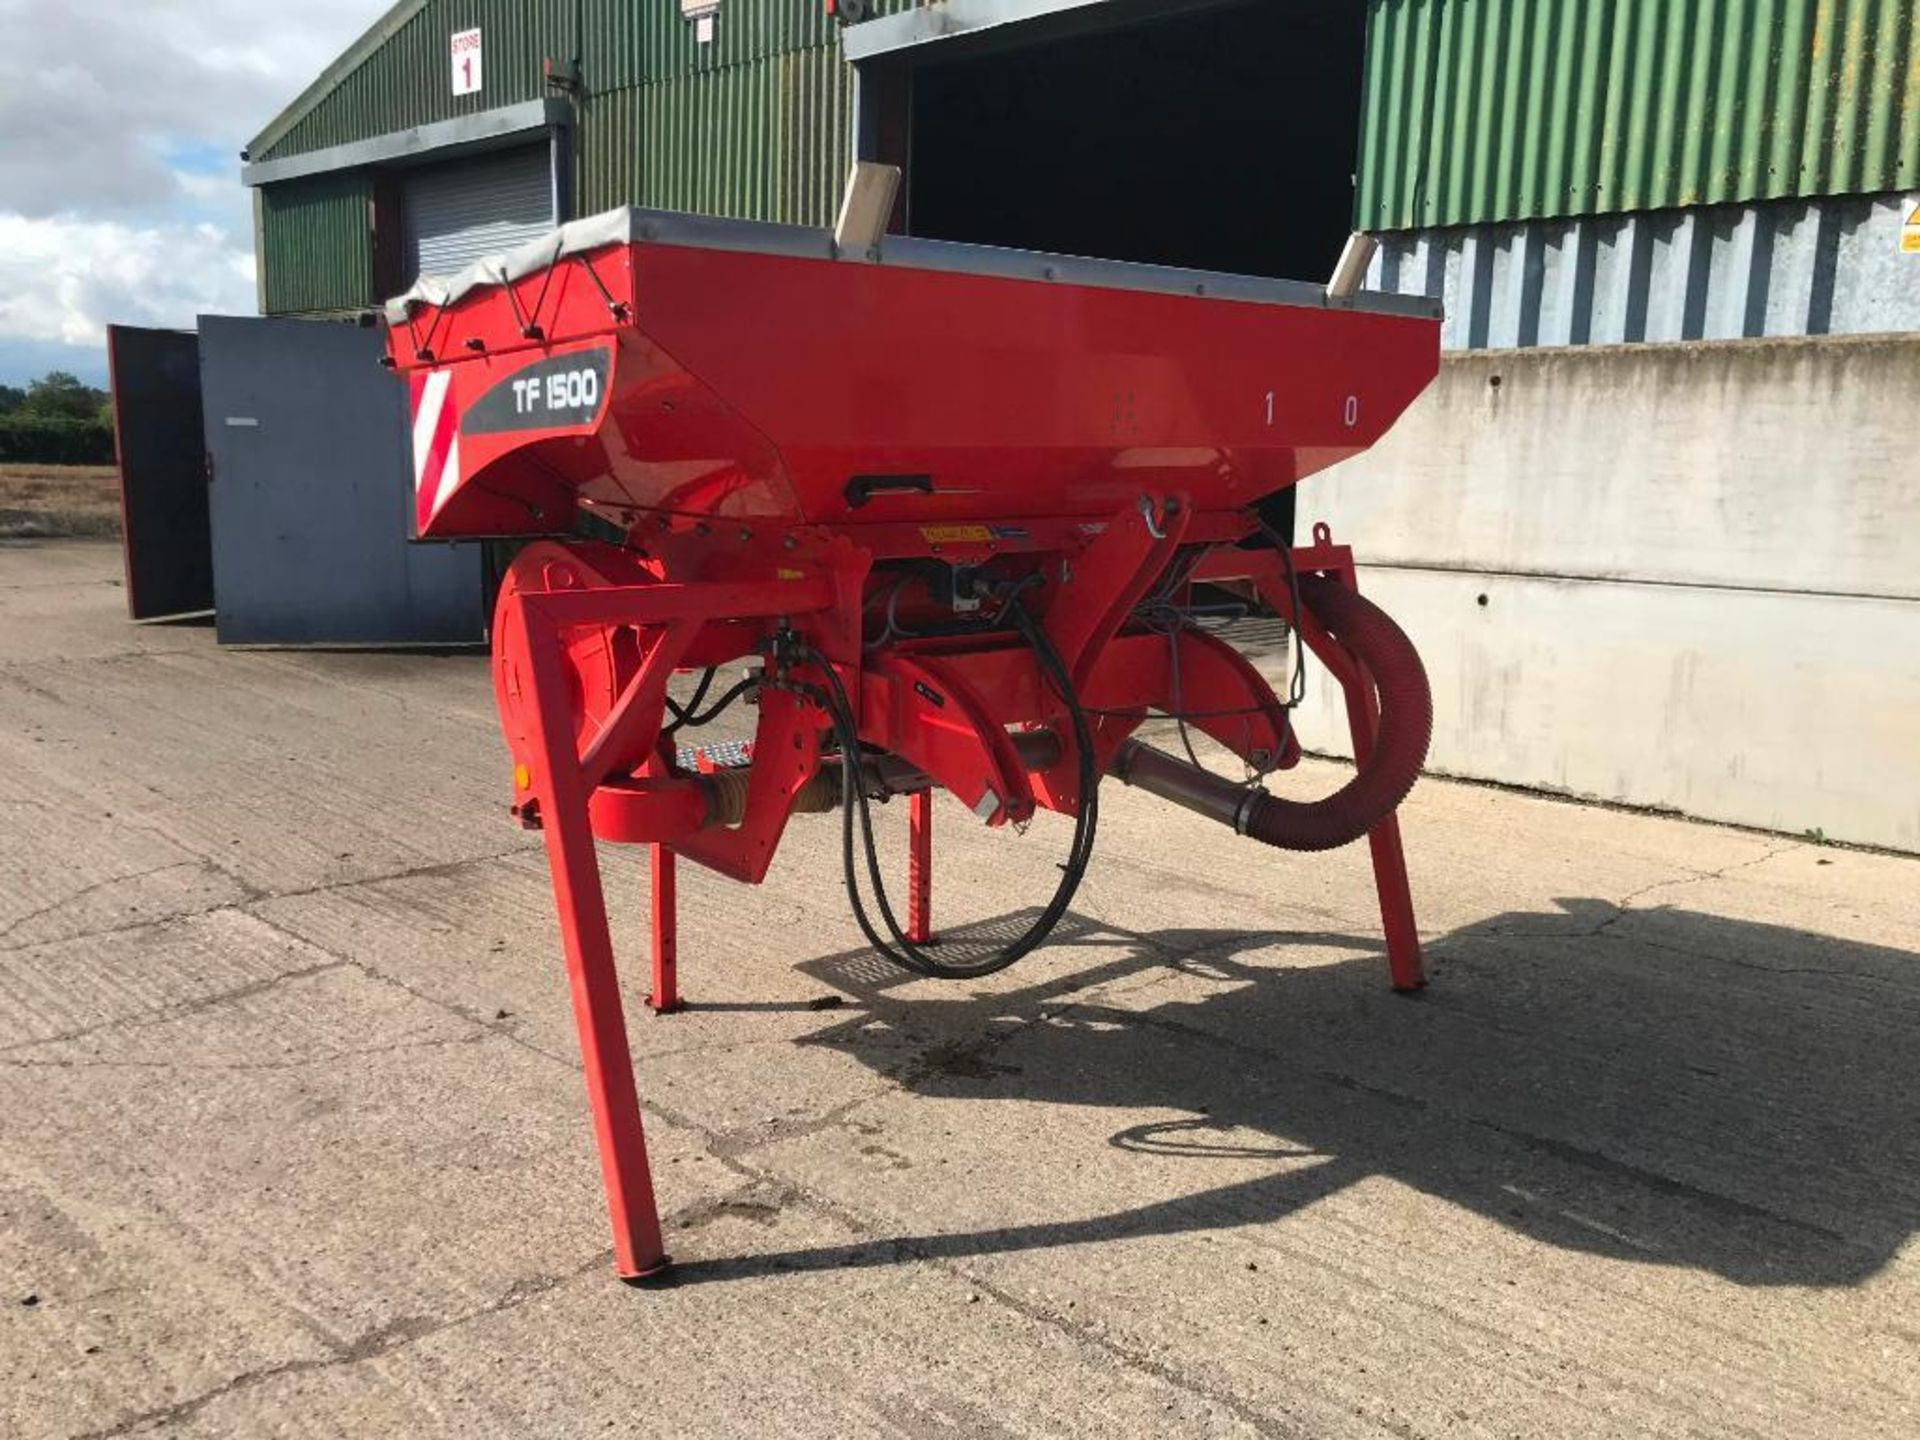 Lot 201 - Kuhn TF1500 front hopper with side pipework and S Control box in office